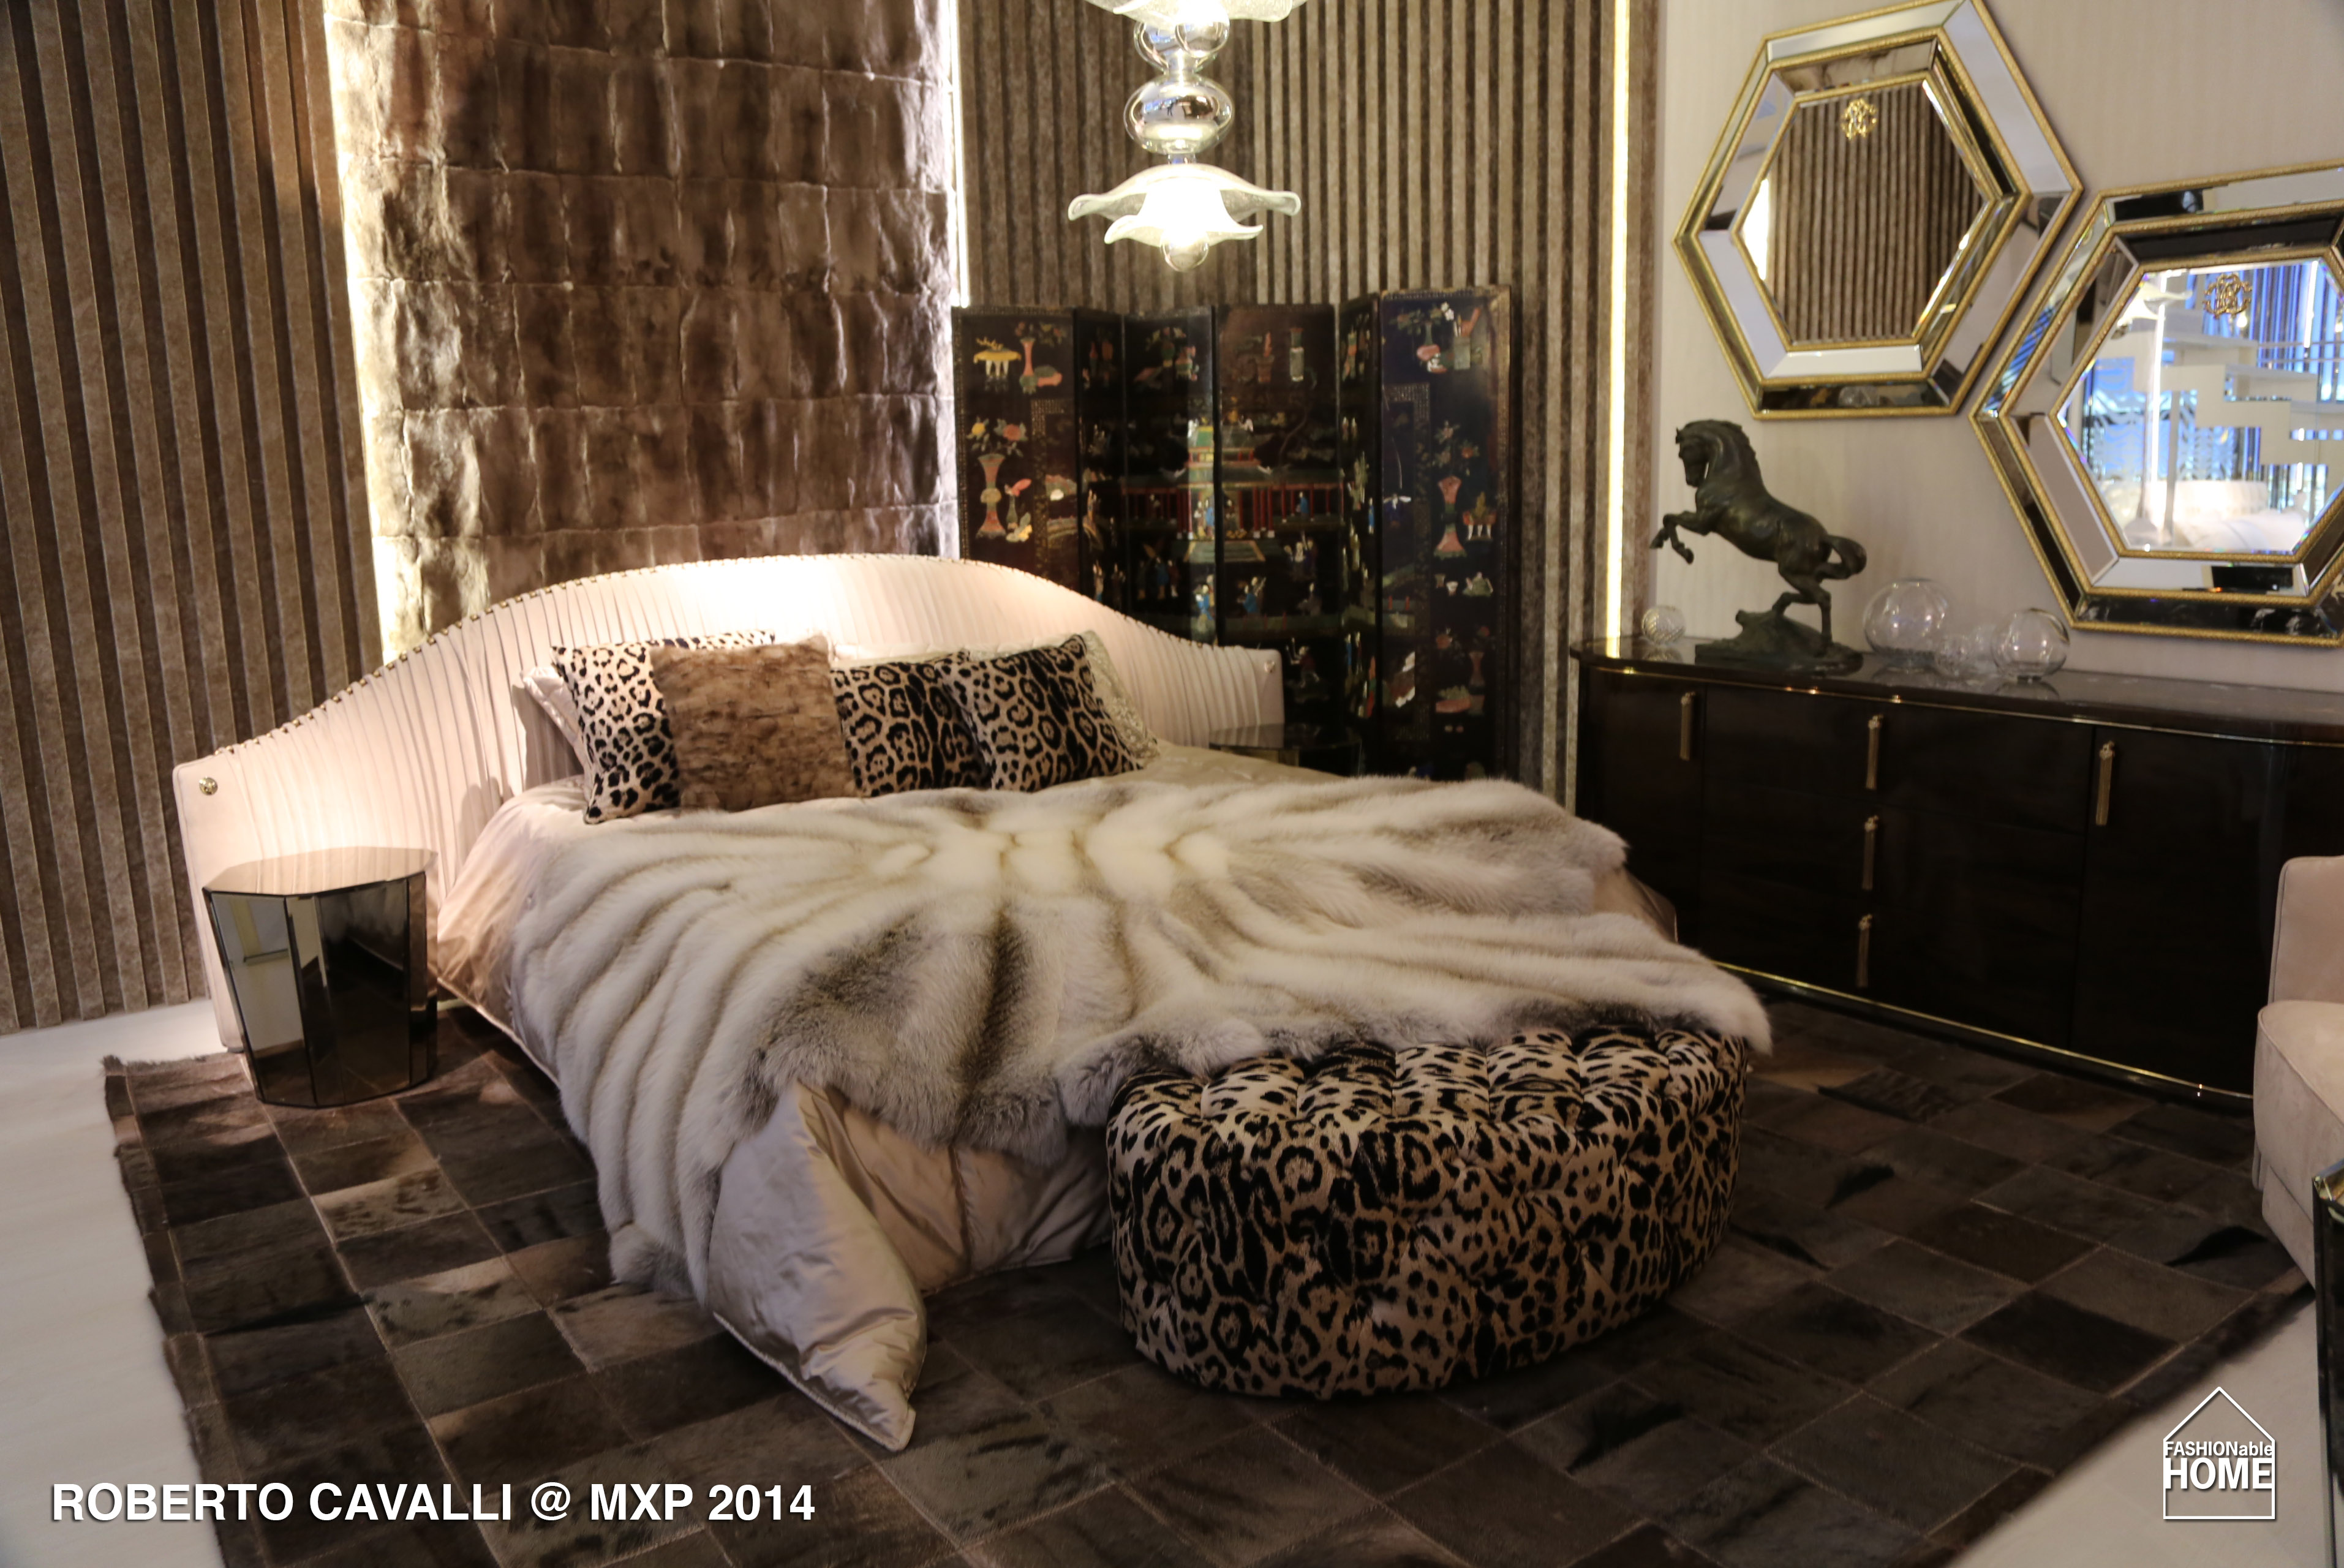 Roberto Cavalli Home Milano 2014 Fashionable Home Blog